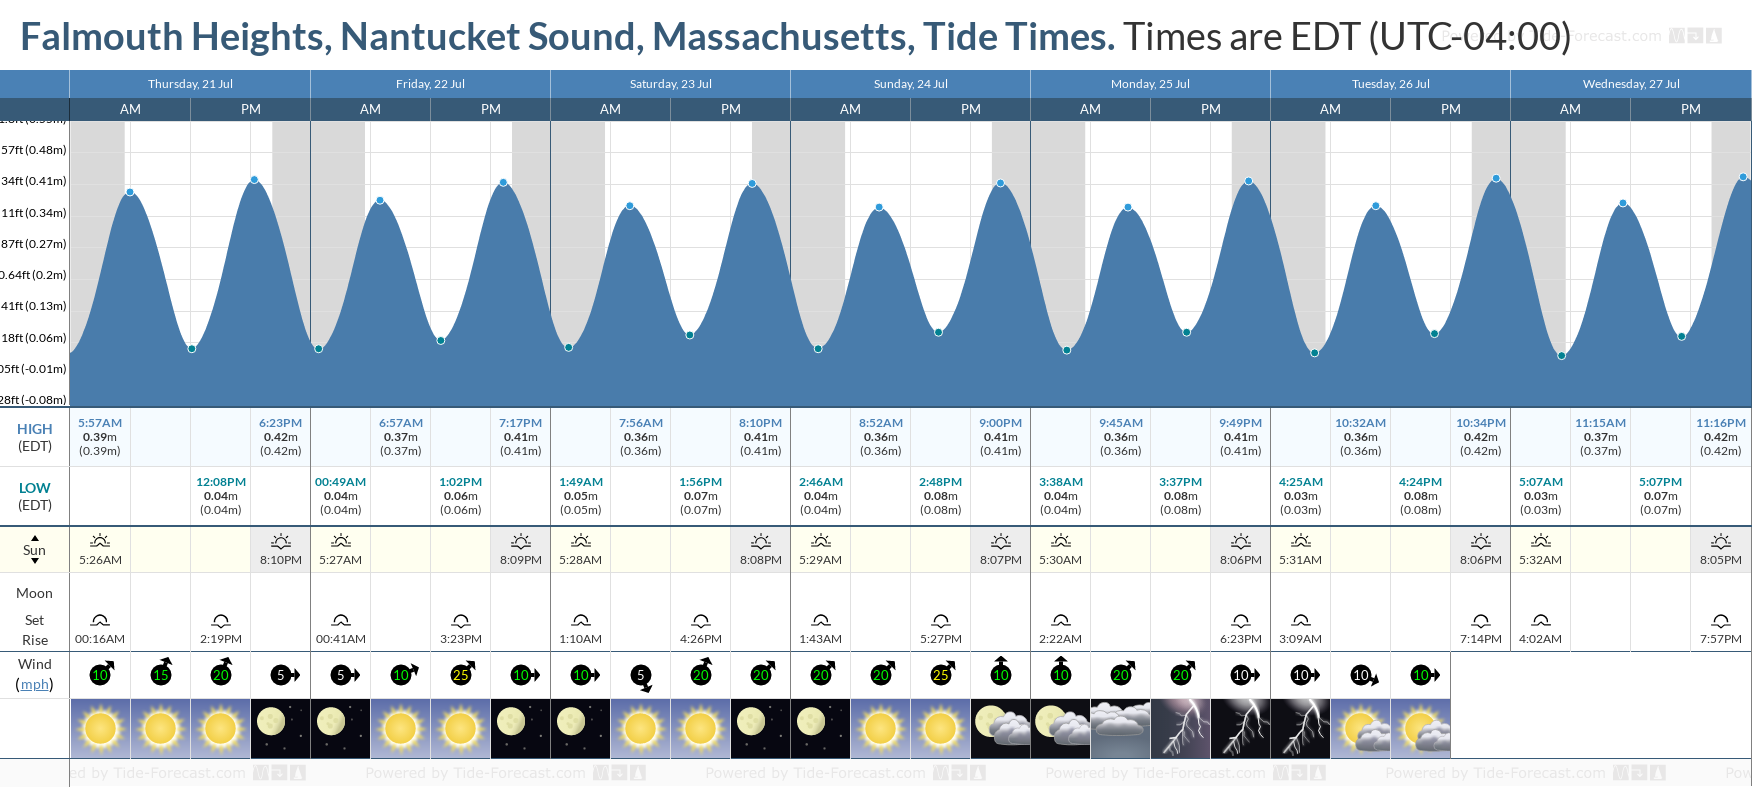 Falmouth Heights, Nantucket Sound, Massachusetts Tide Chart including high and low tide tide times for the next 7 days